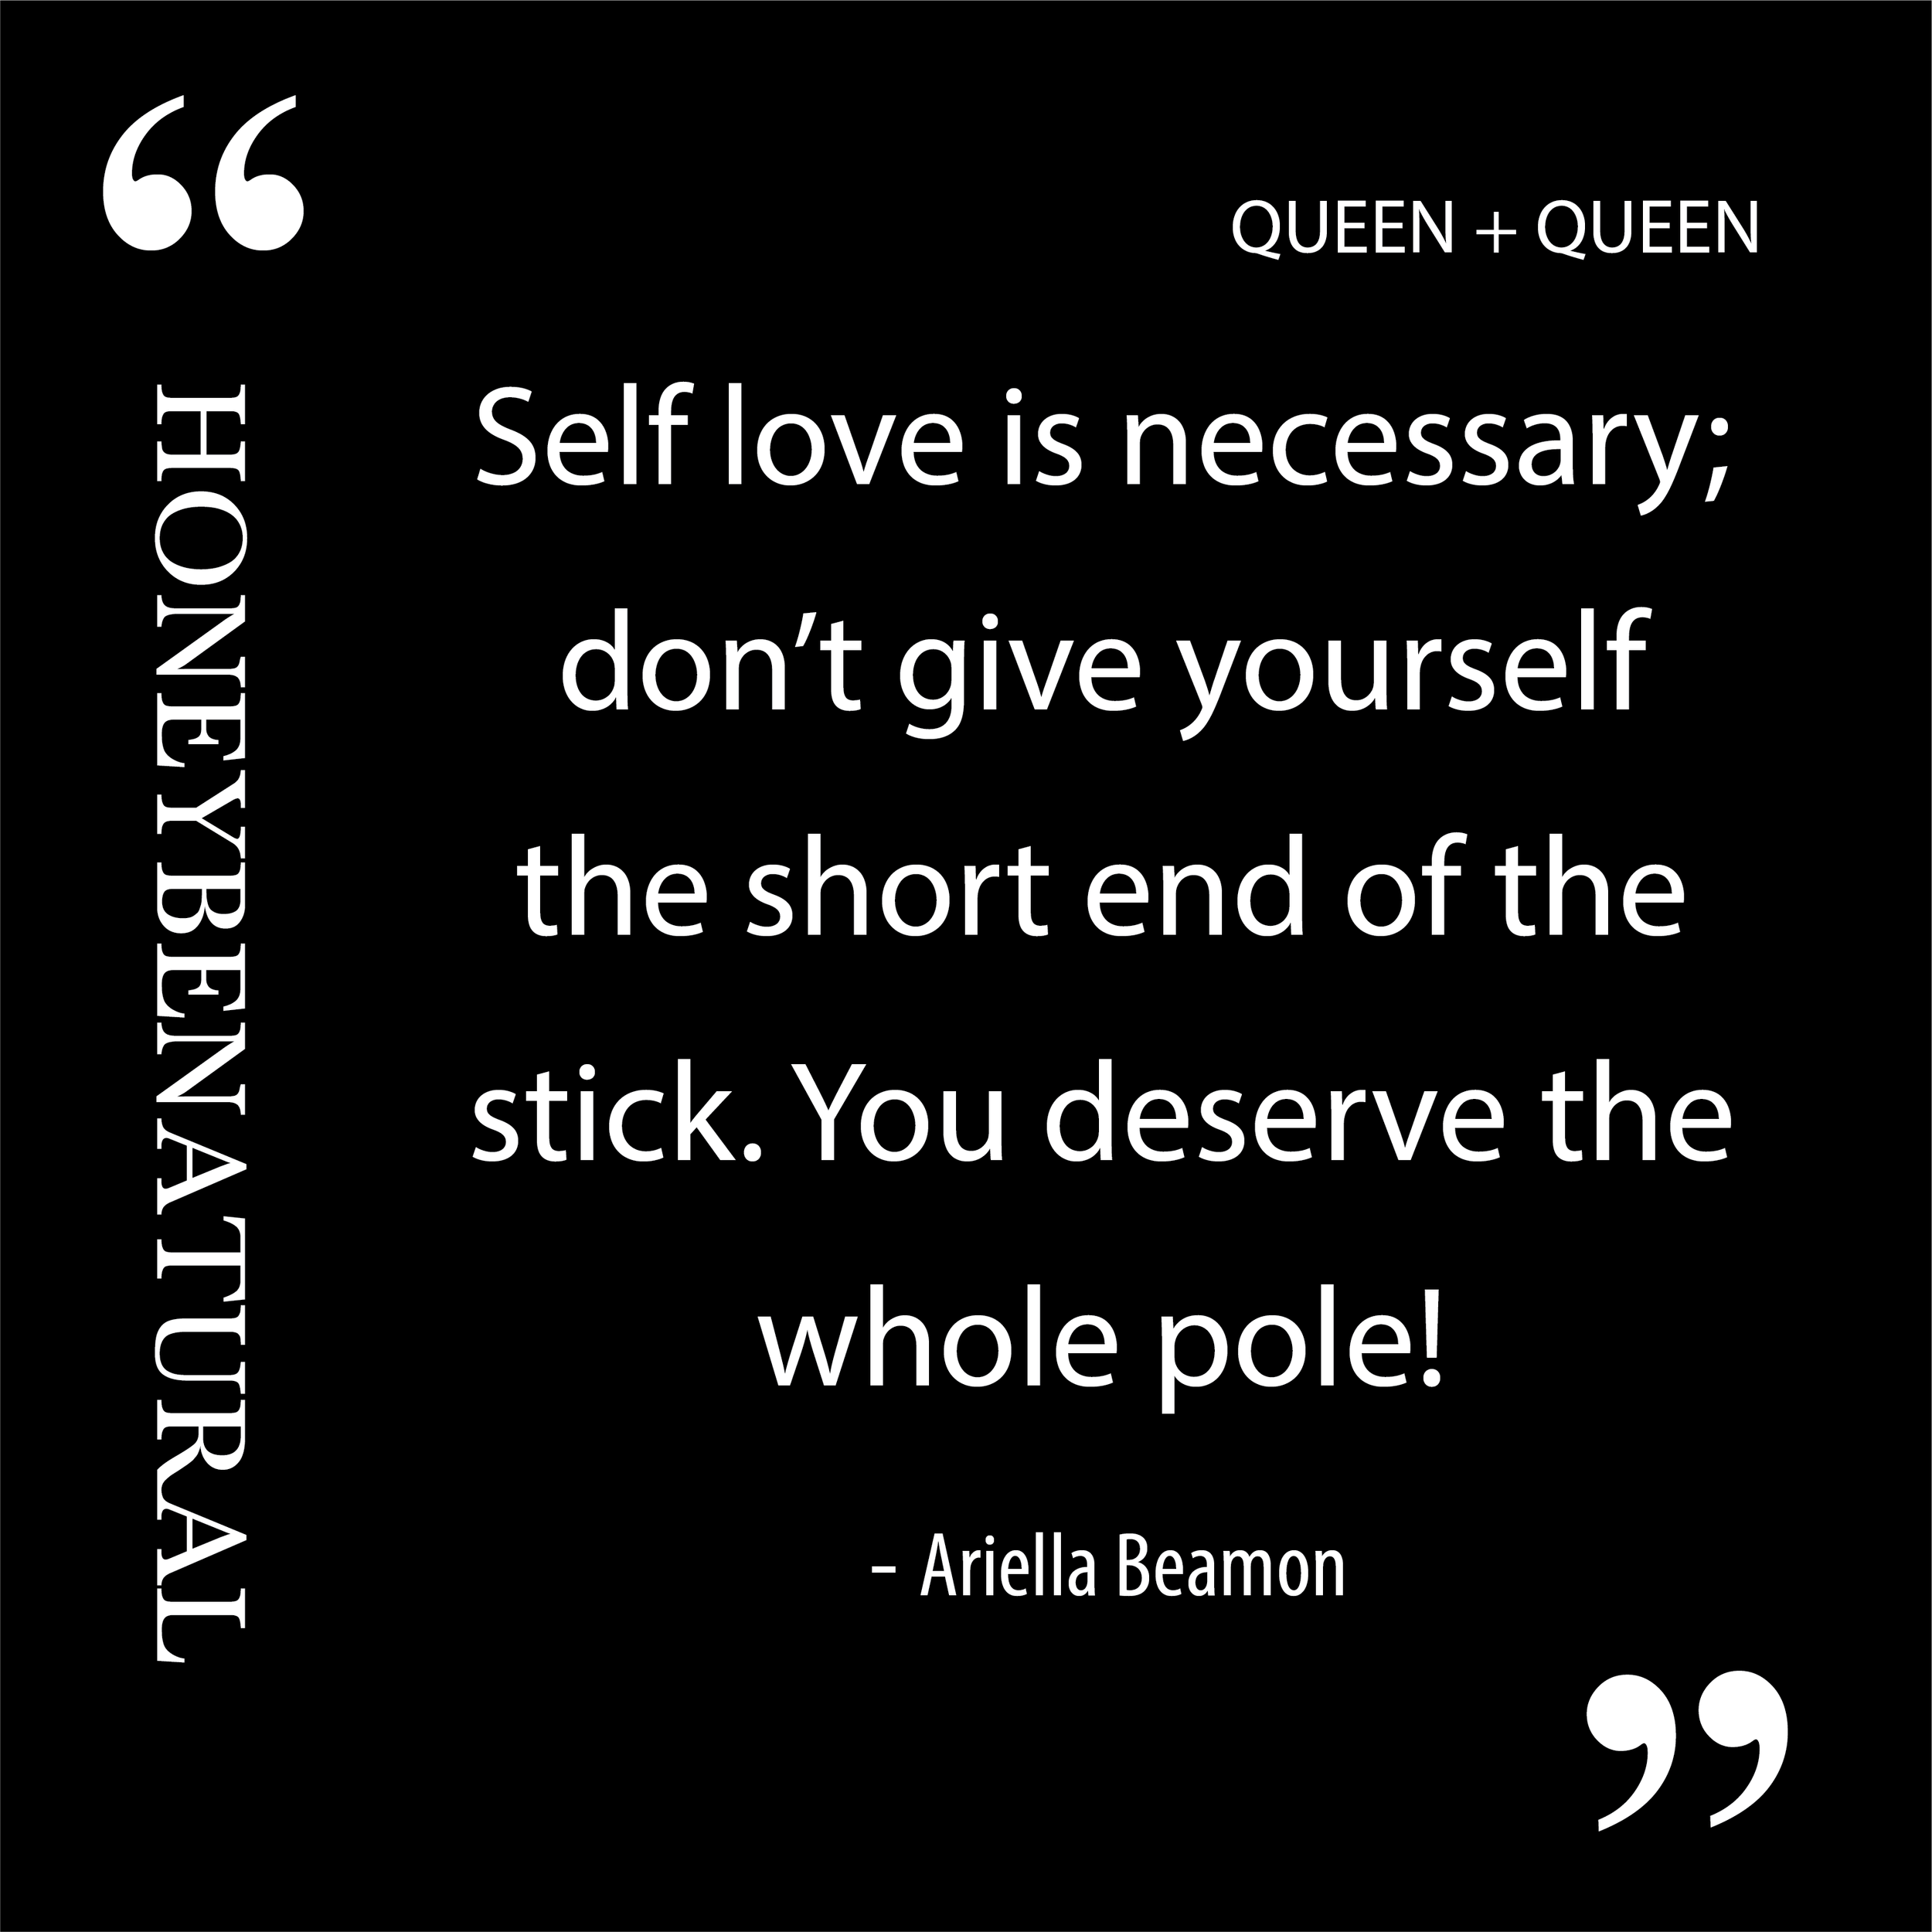 QueenPlusQueen_July 2019_Ariella Beamon_Black Graphic-05.png